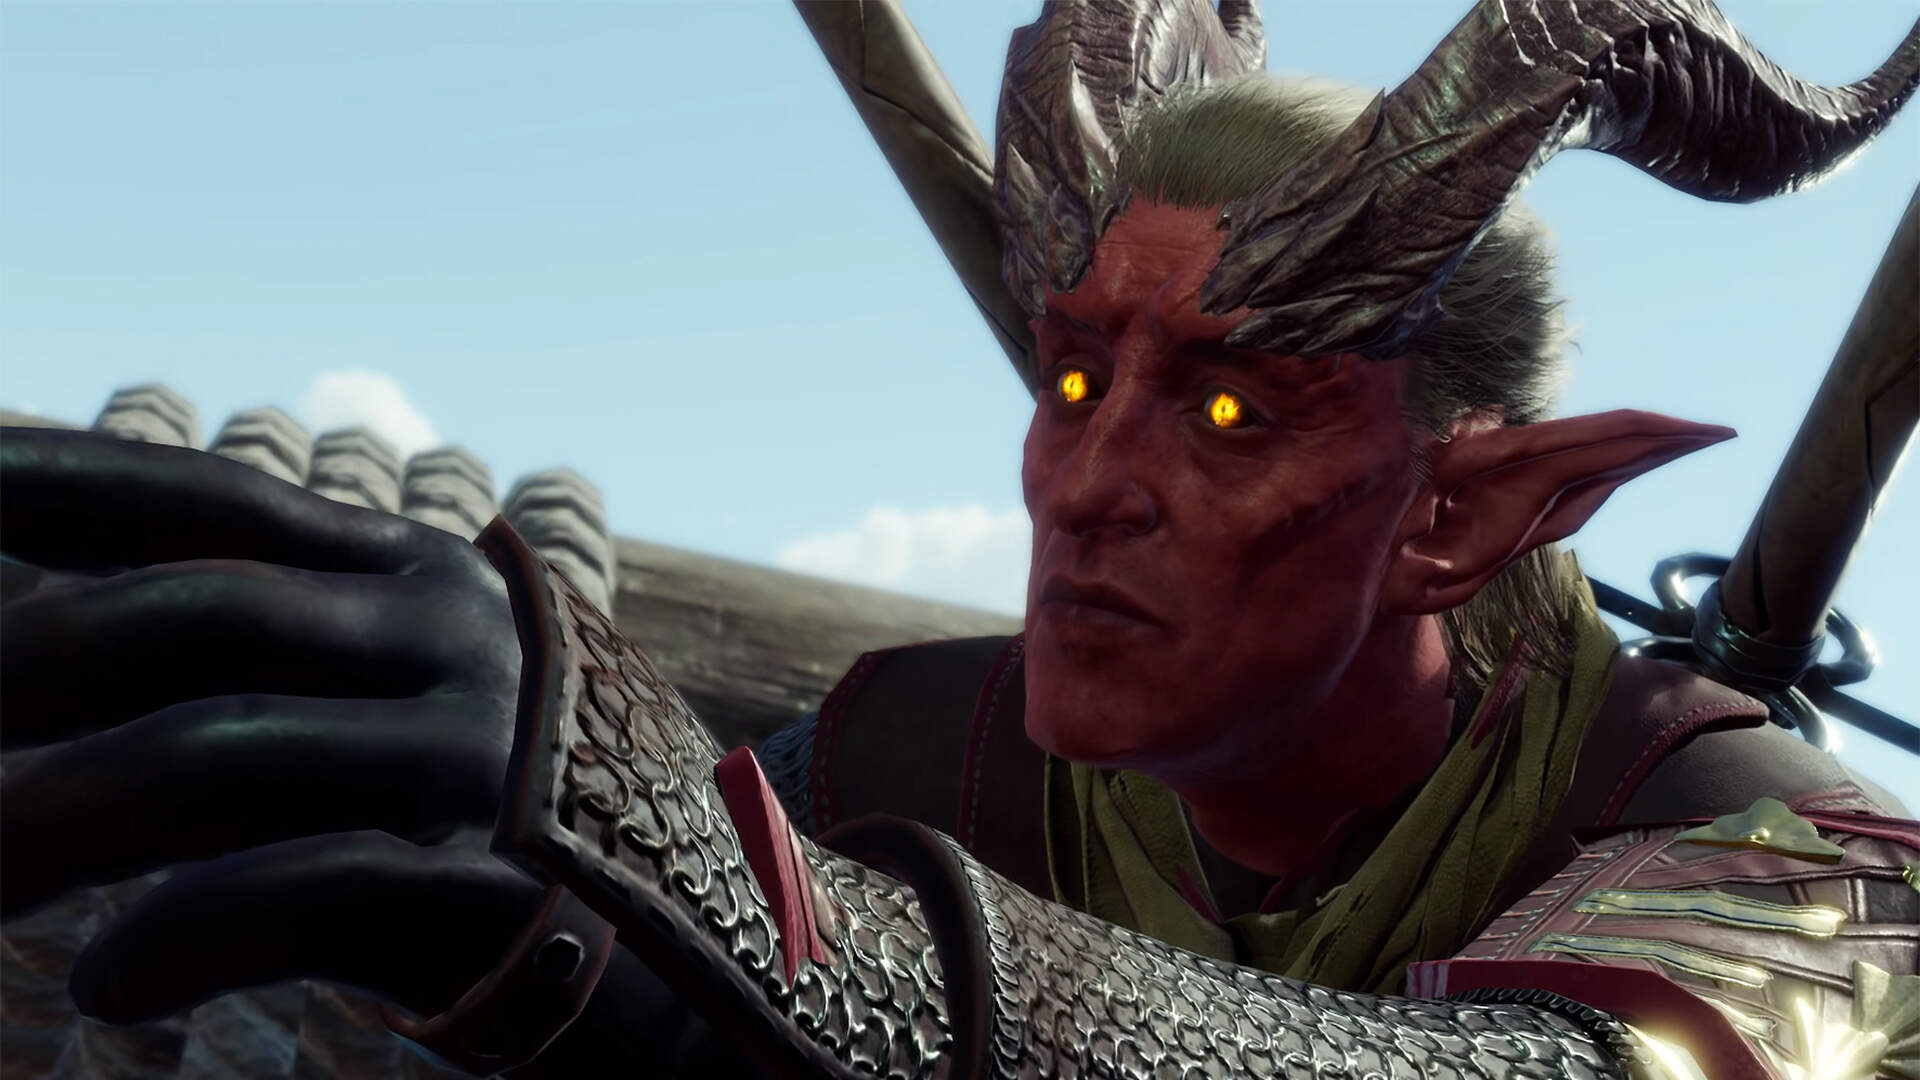 Today's Baldur's Gate 3 Demo Shows It's Still Got That Divinity Style - And Difficulty